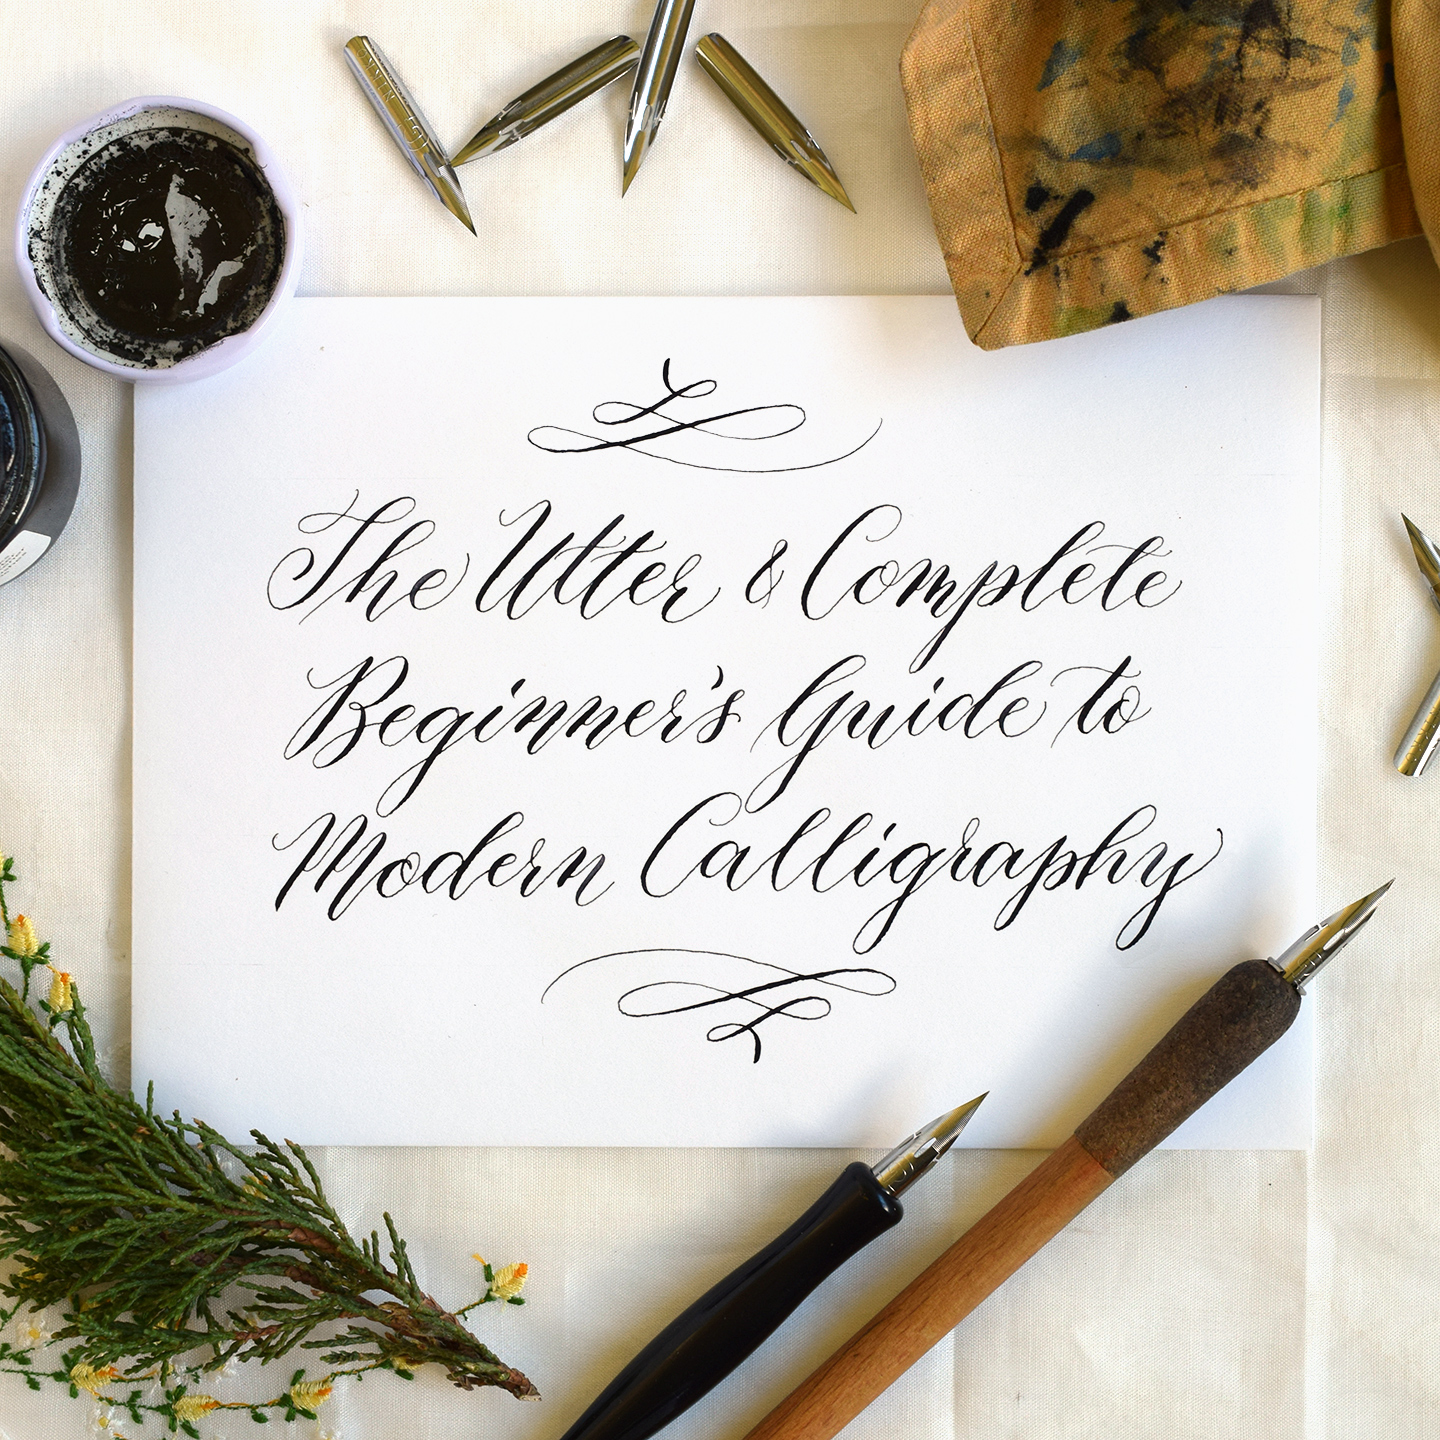 Wedding Calligraphy A Guide To Beautiful Hand Lettering The Beginner S Guide To Modern Calligraphy The Postman S Knock